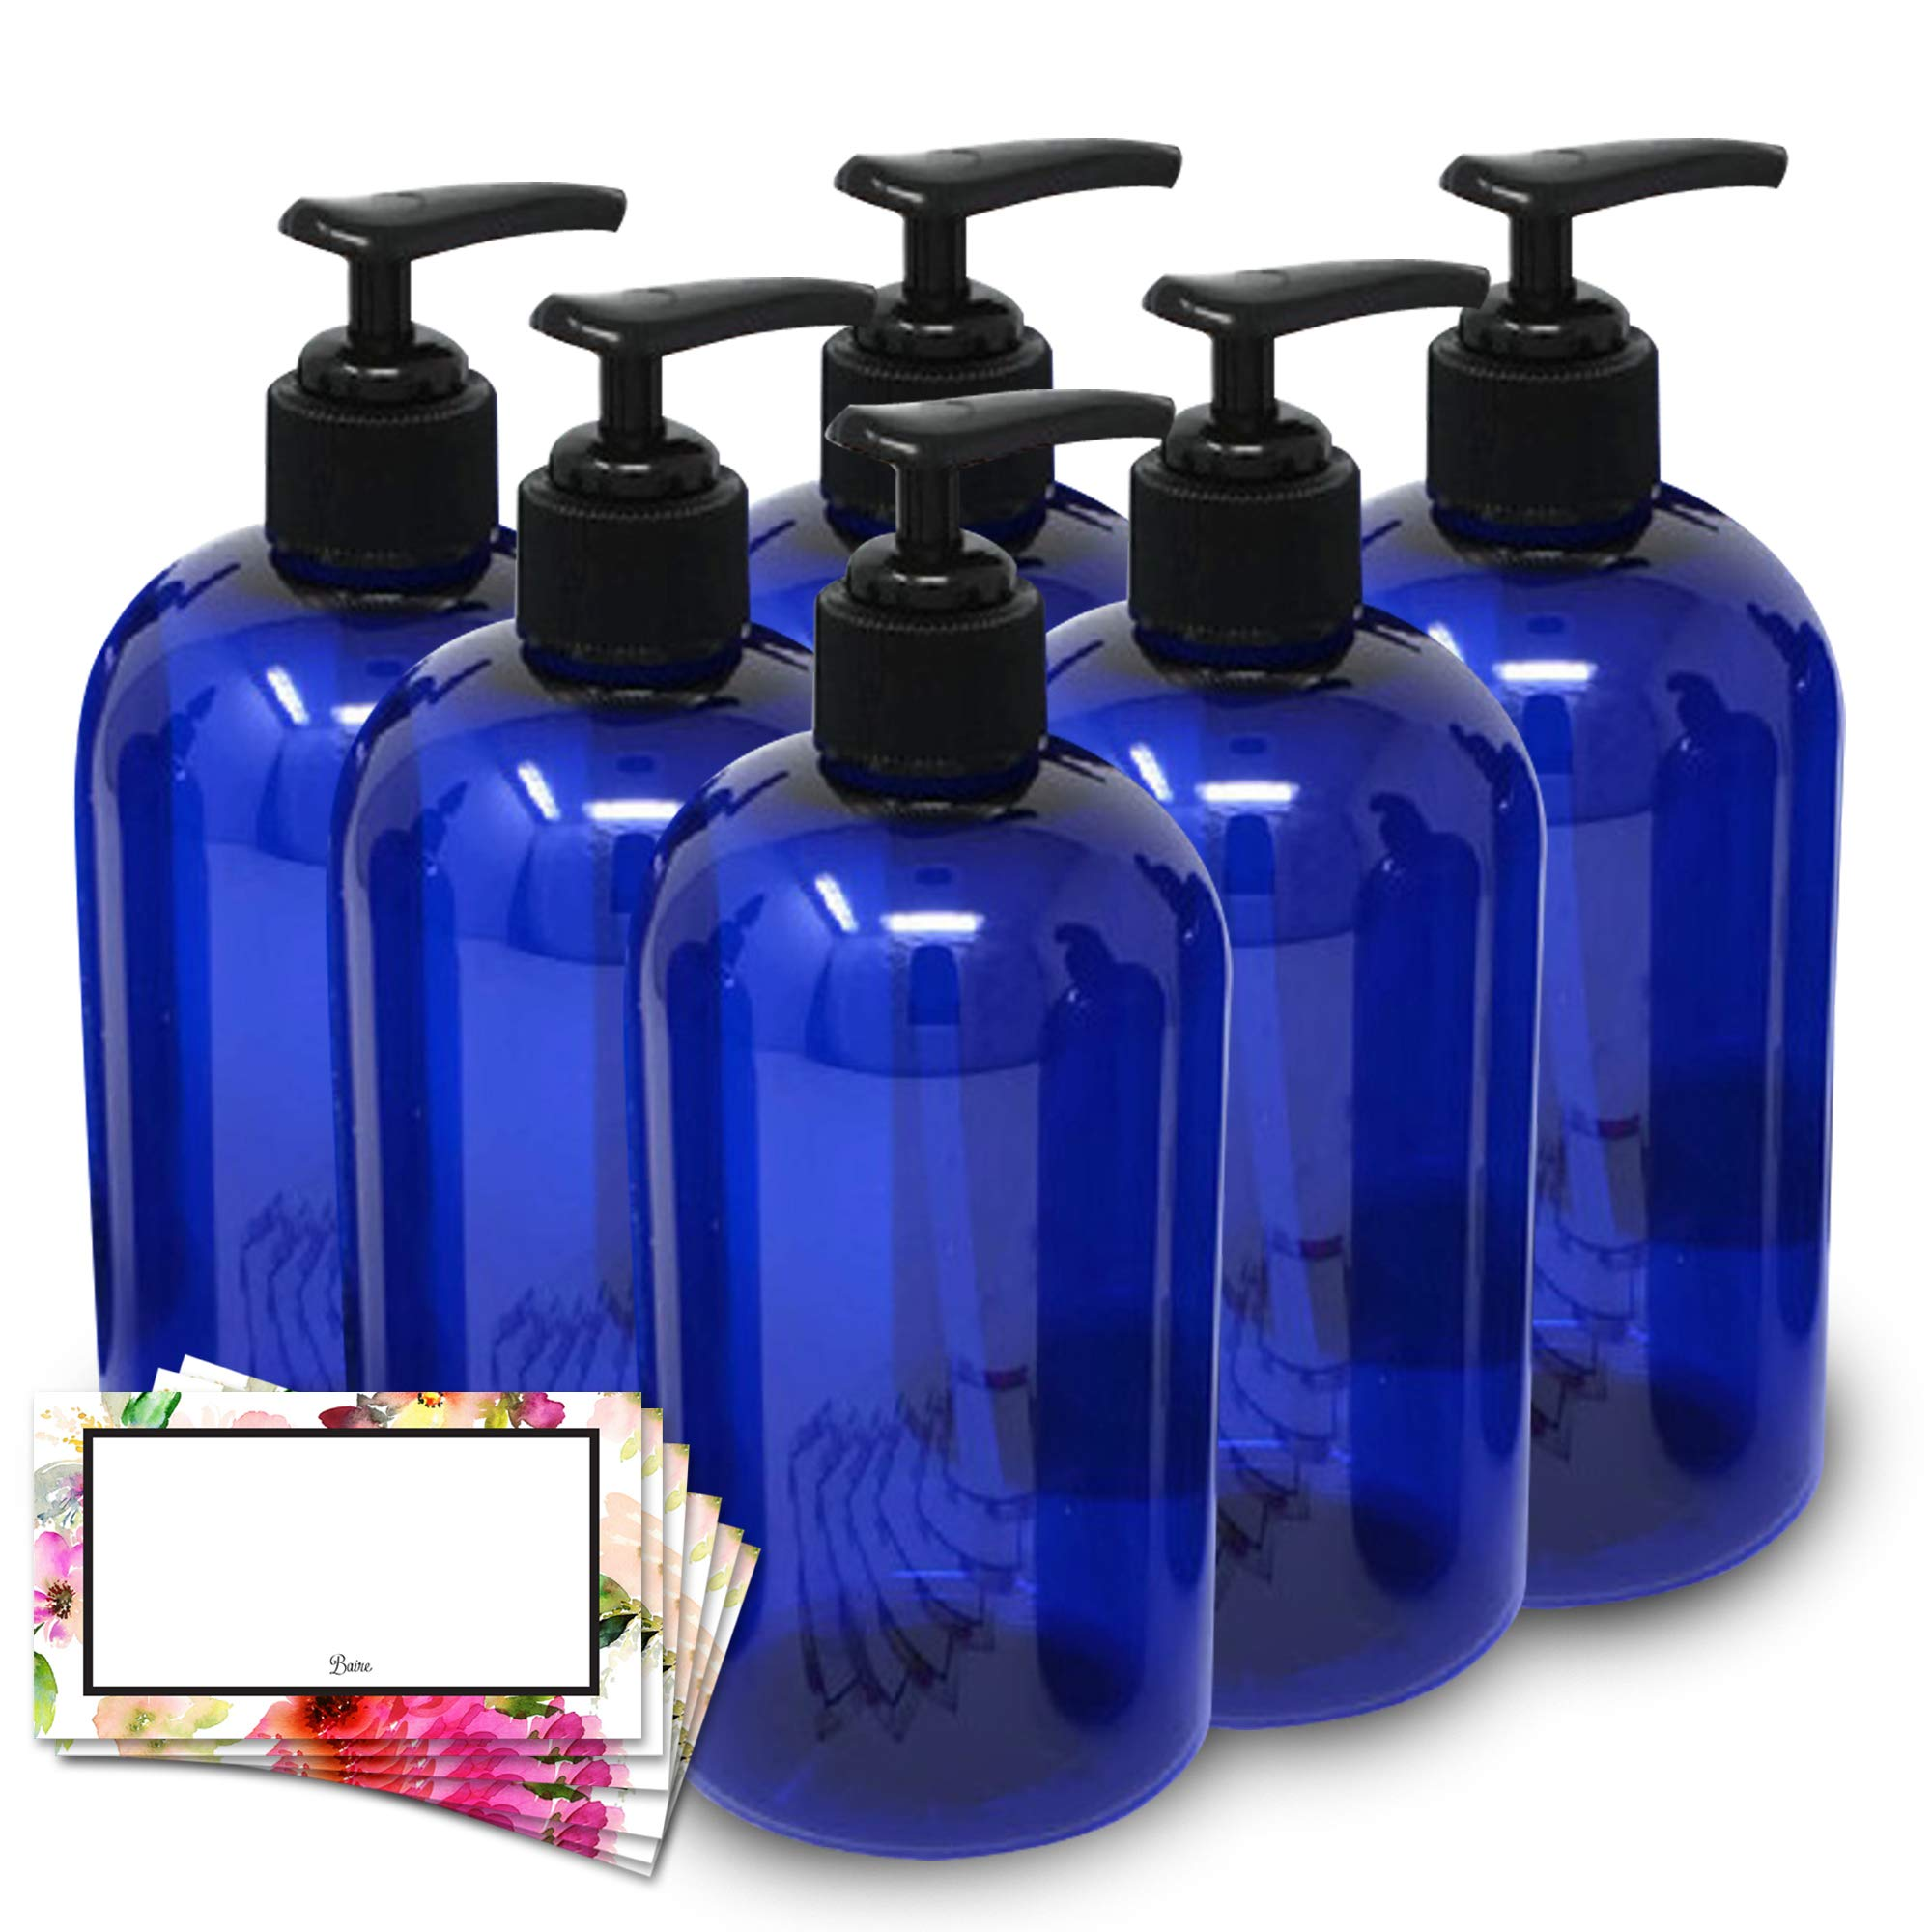 BAIRE BOTTLES - 16 OZ BLUE PLASTIC REFILLABLE BOTTLES with BLACK Pumps - ORGANIZE Soap, Shampoo and Lotion with a Clean, Classy Look - PET, Lightweight, BPA Free - 6 Pack, BONUS 6 FLORAL LABELS